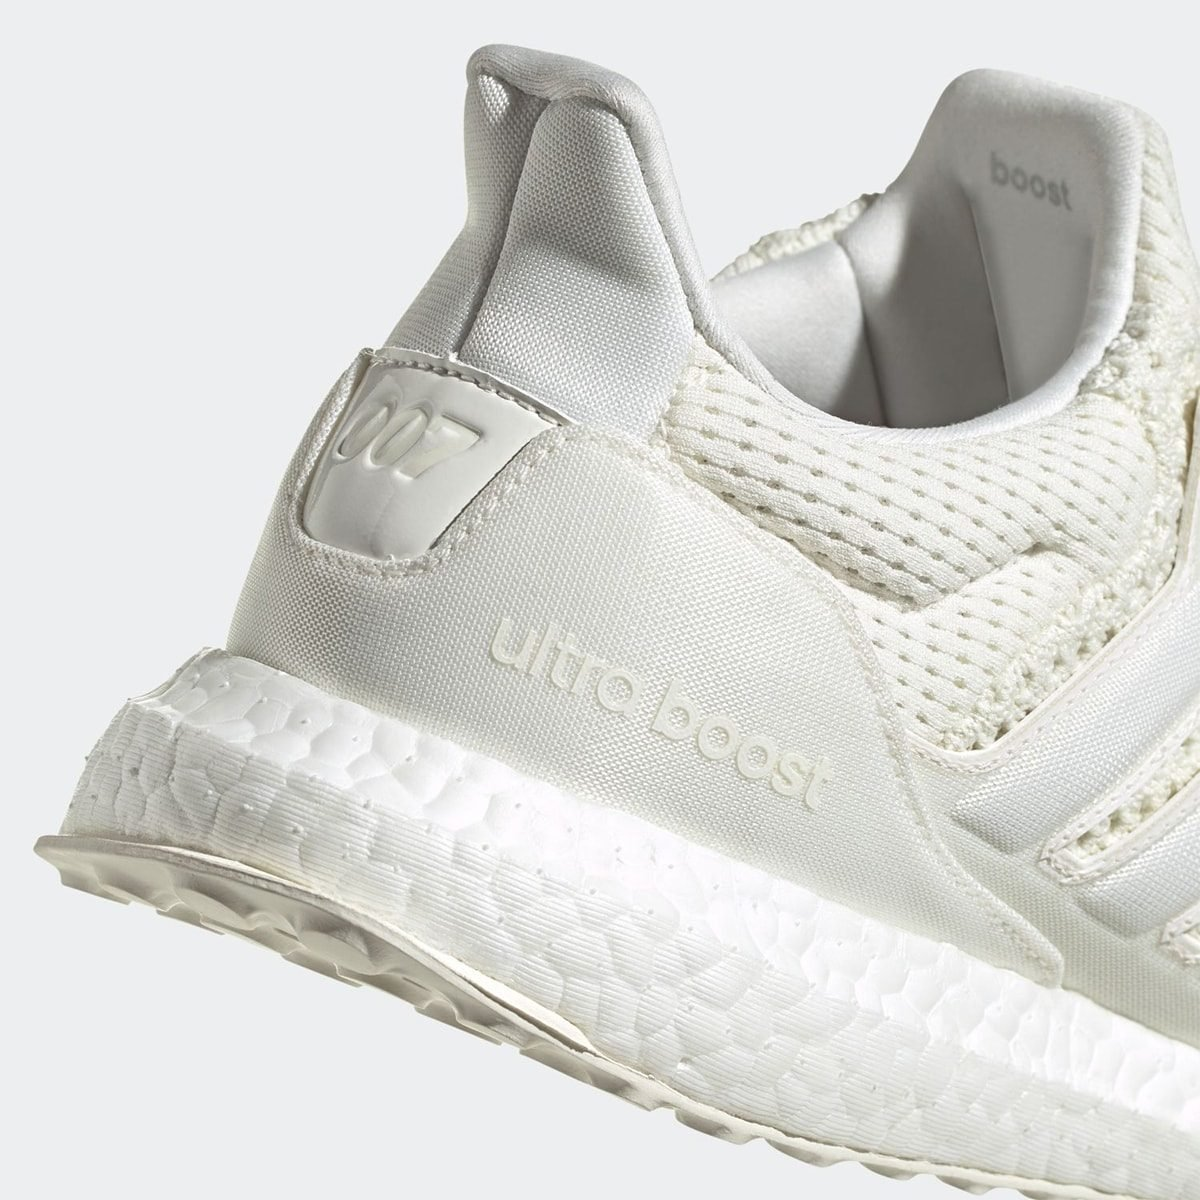 The James Bond x adidas Ultra BOOST Collection Has Been Postponed